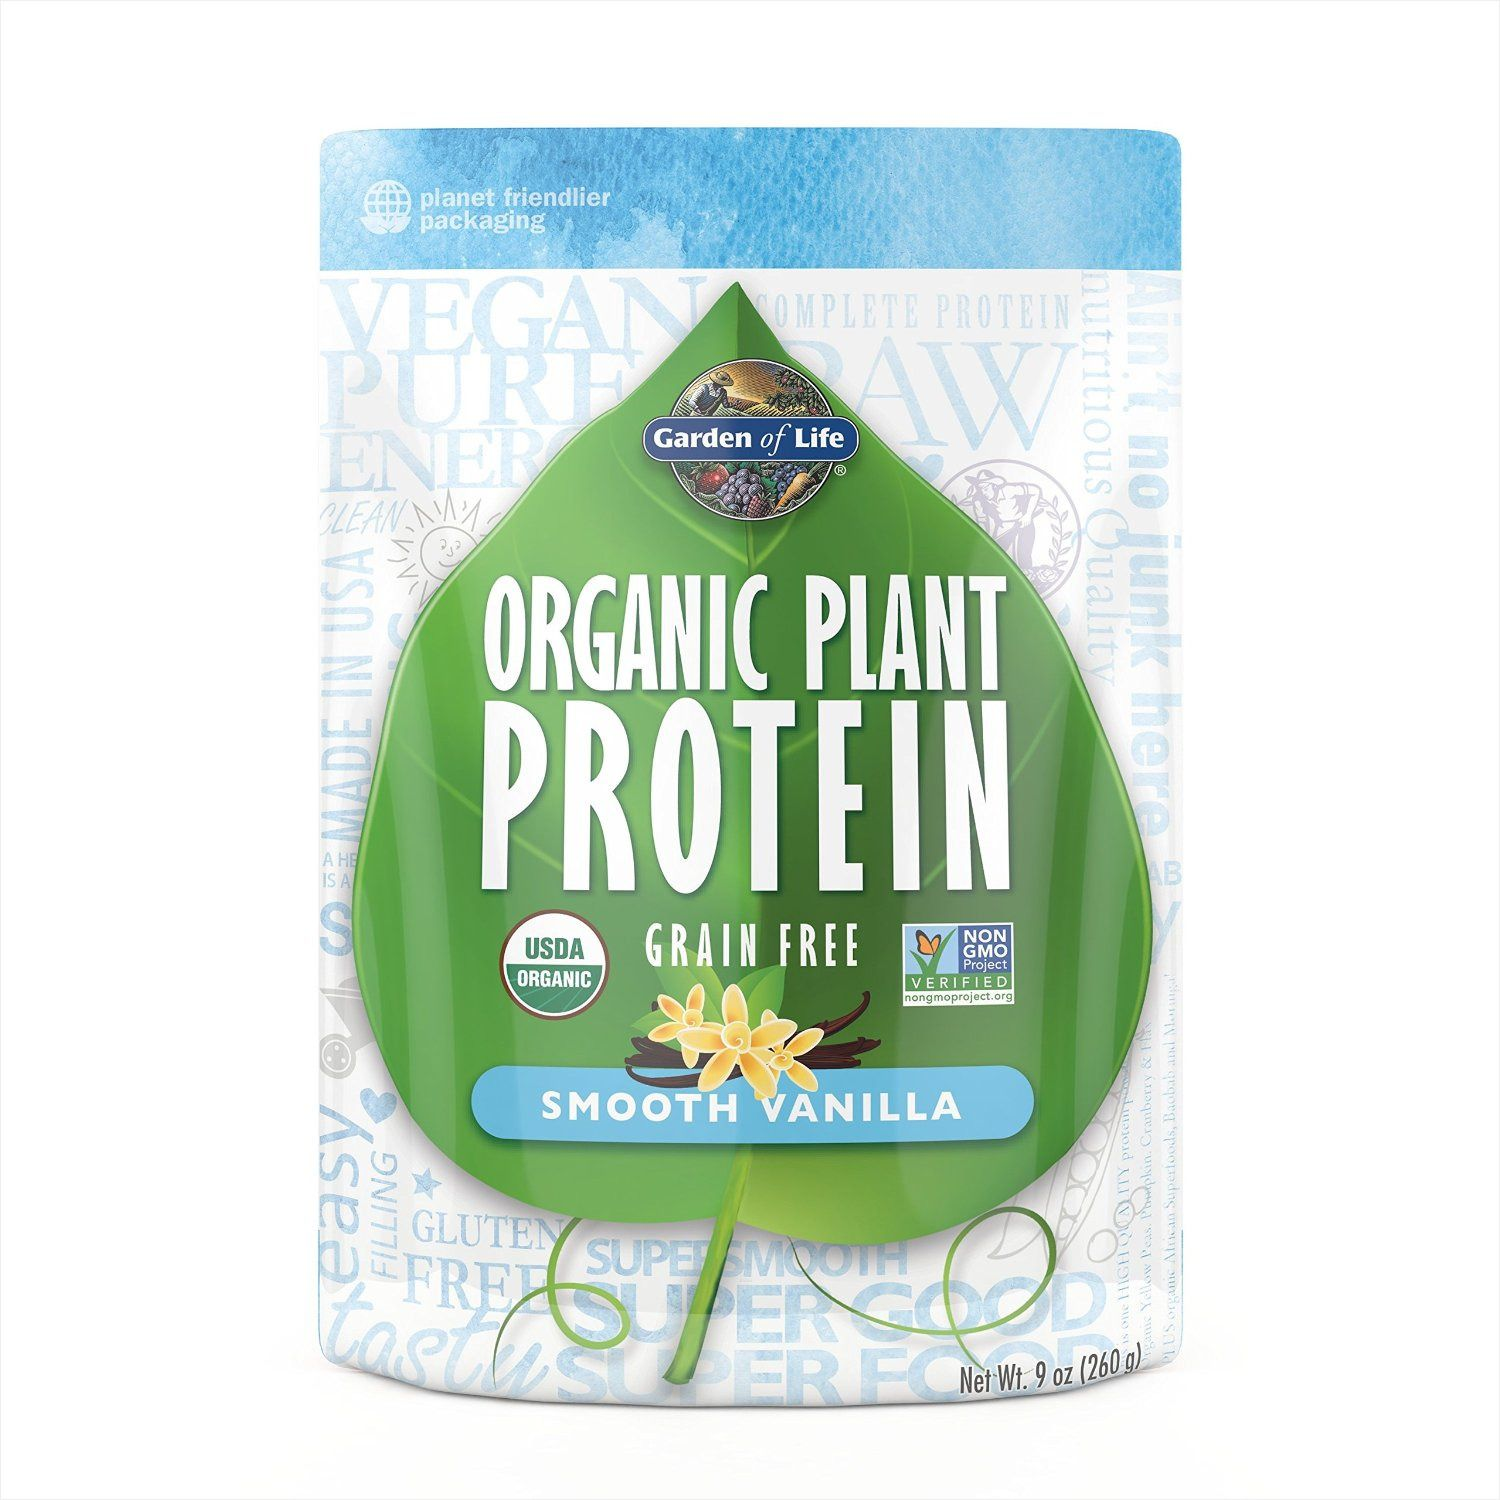 Garden of Life Organic Plant Protein Powder Giveaway Ends